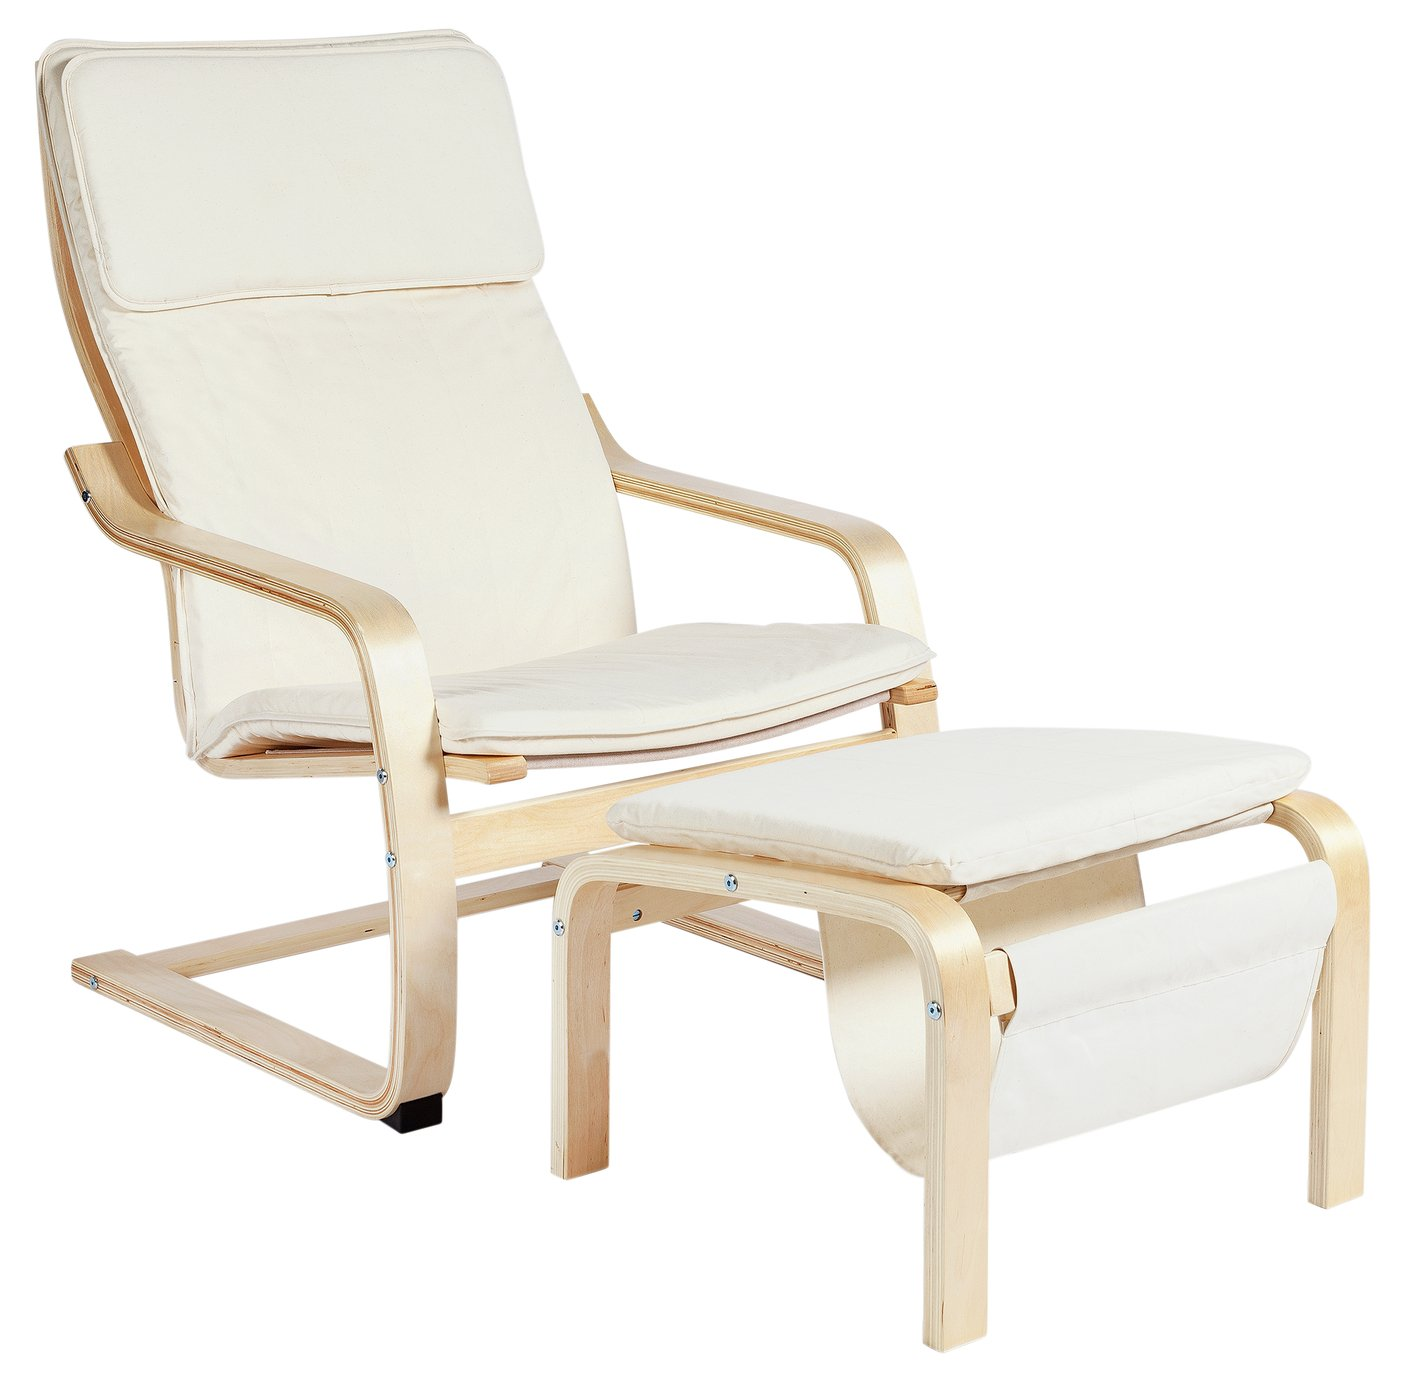 chair gym argos white pool lounge chairs results for home bentwood fabric and footstool natural